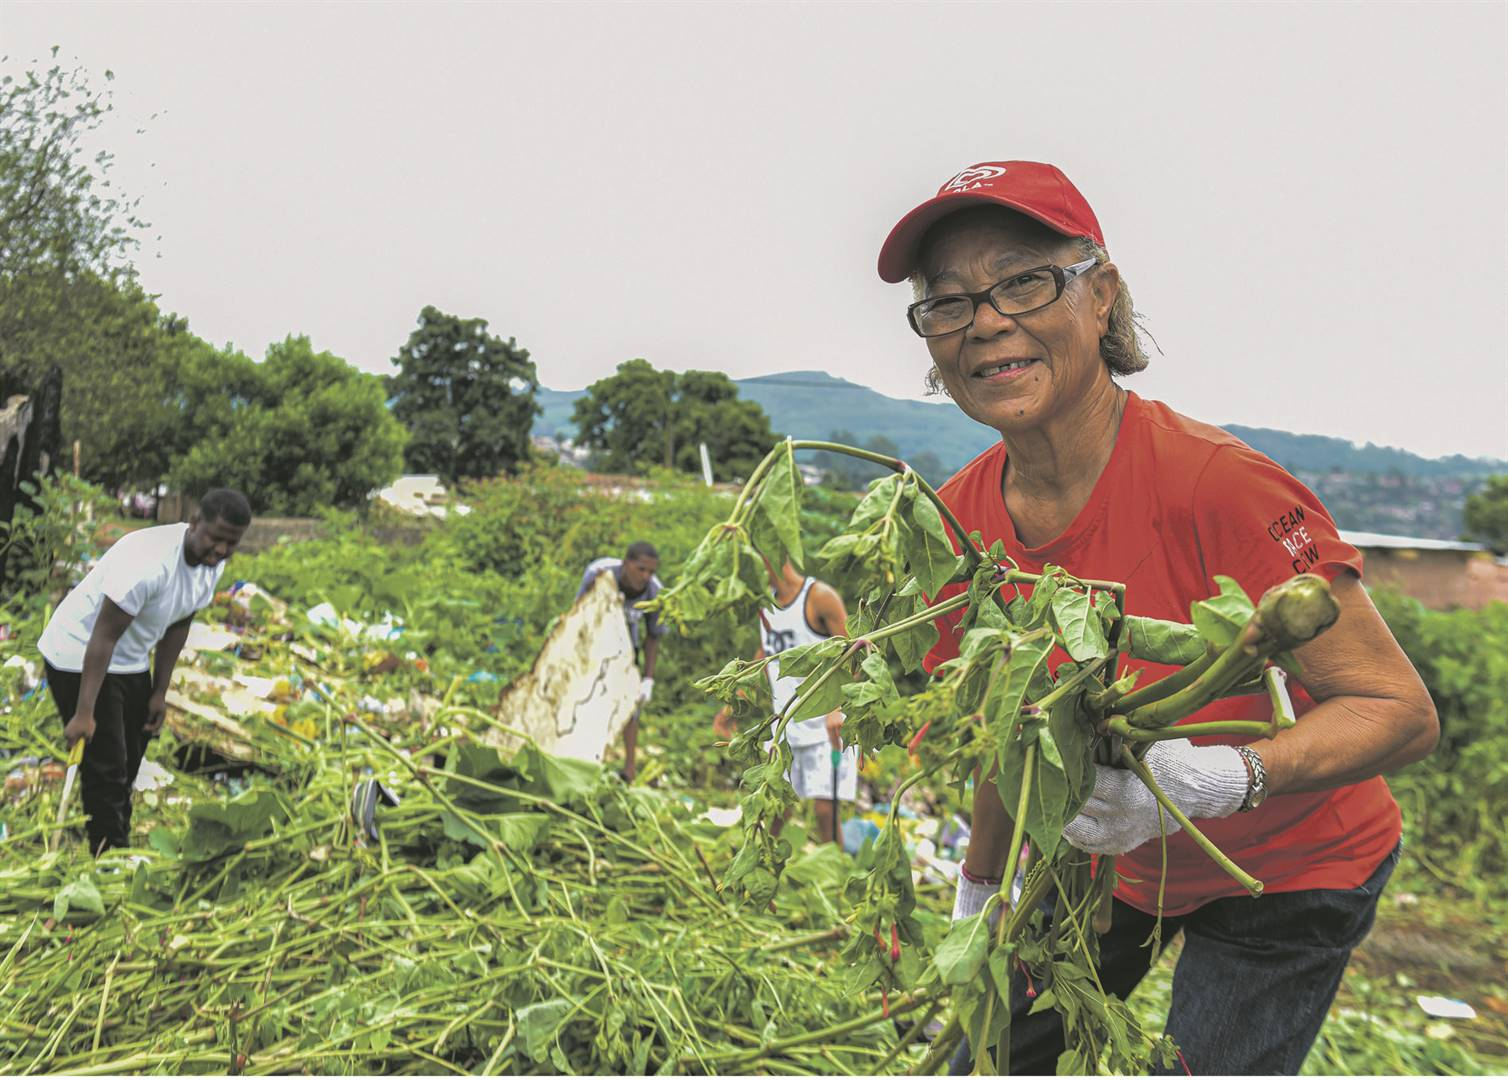 Antoinette Rassie (68) of Woodlands who joined the Ghost Town clean-up campaign yesterday.PHOTO: moeketsi mamane